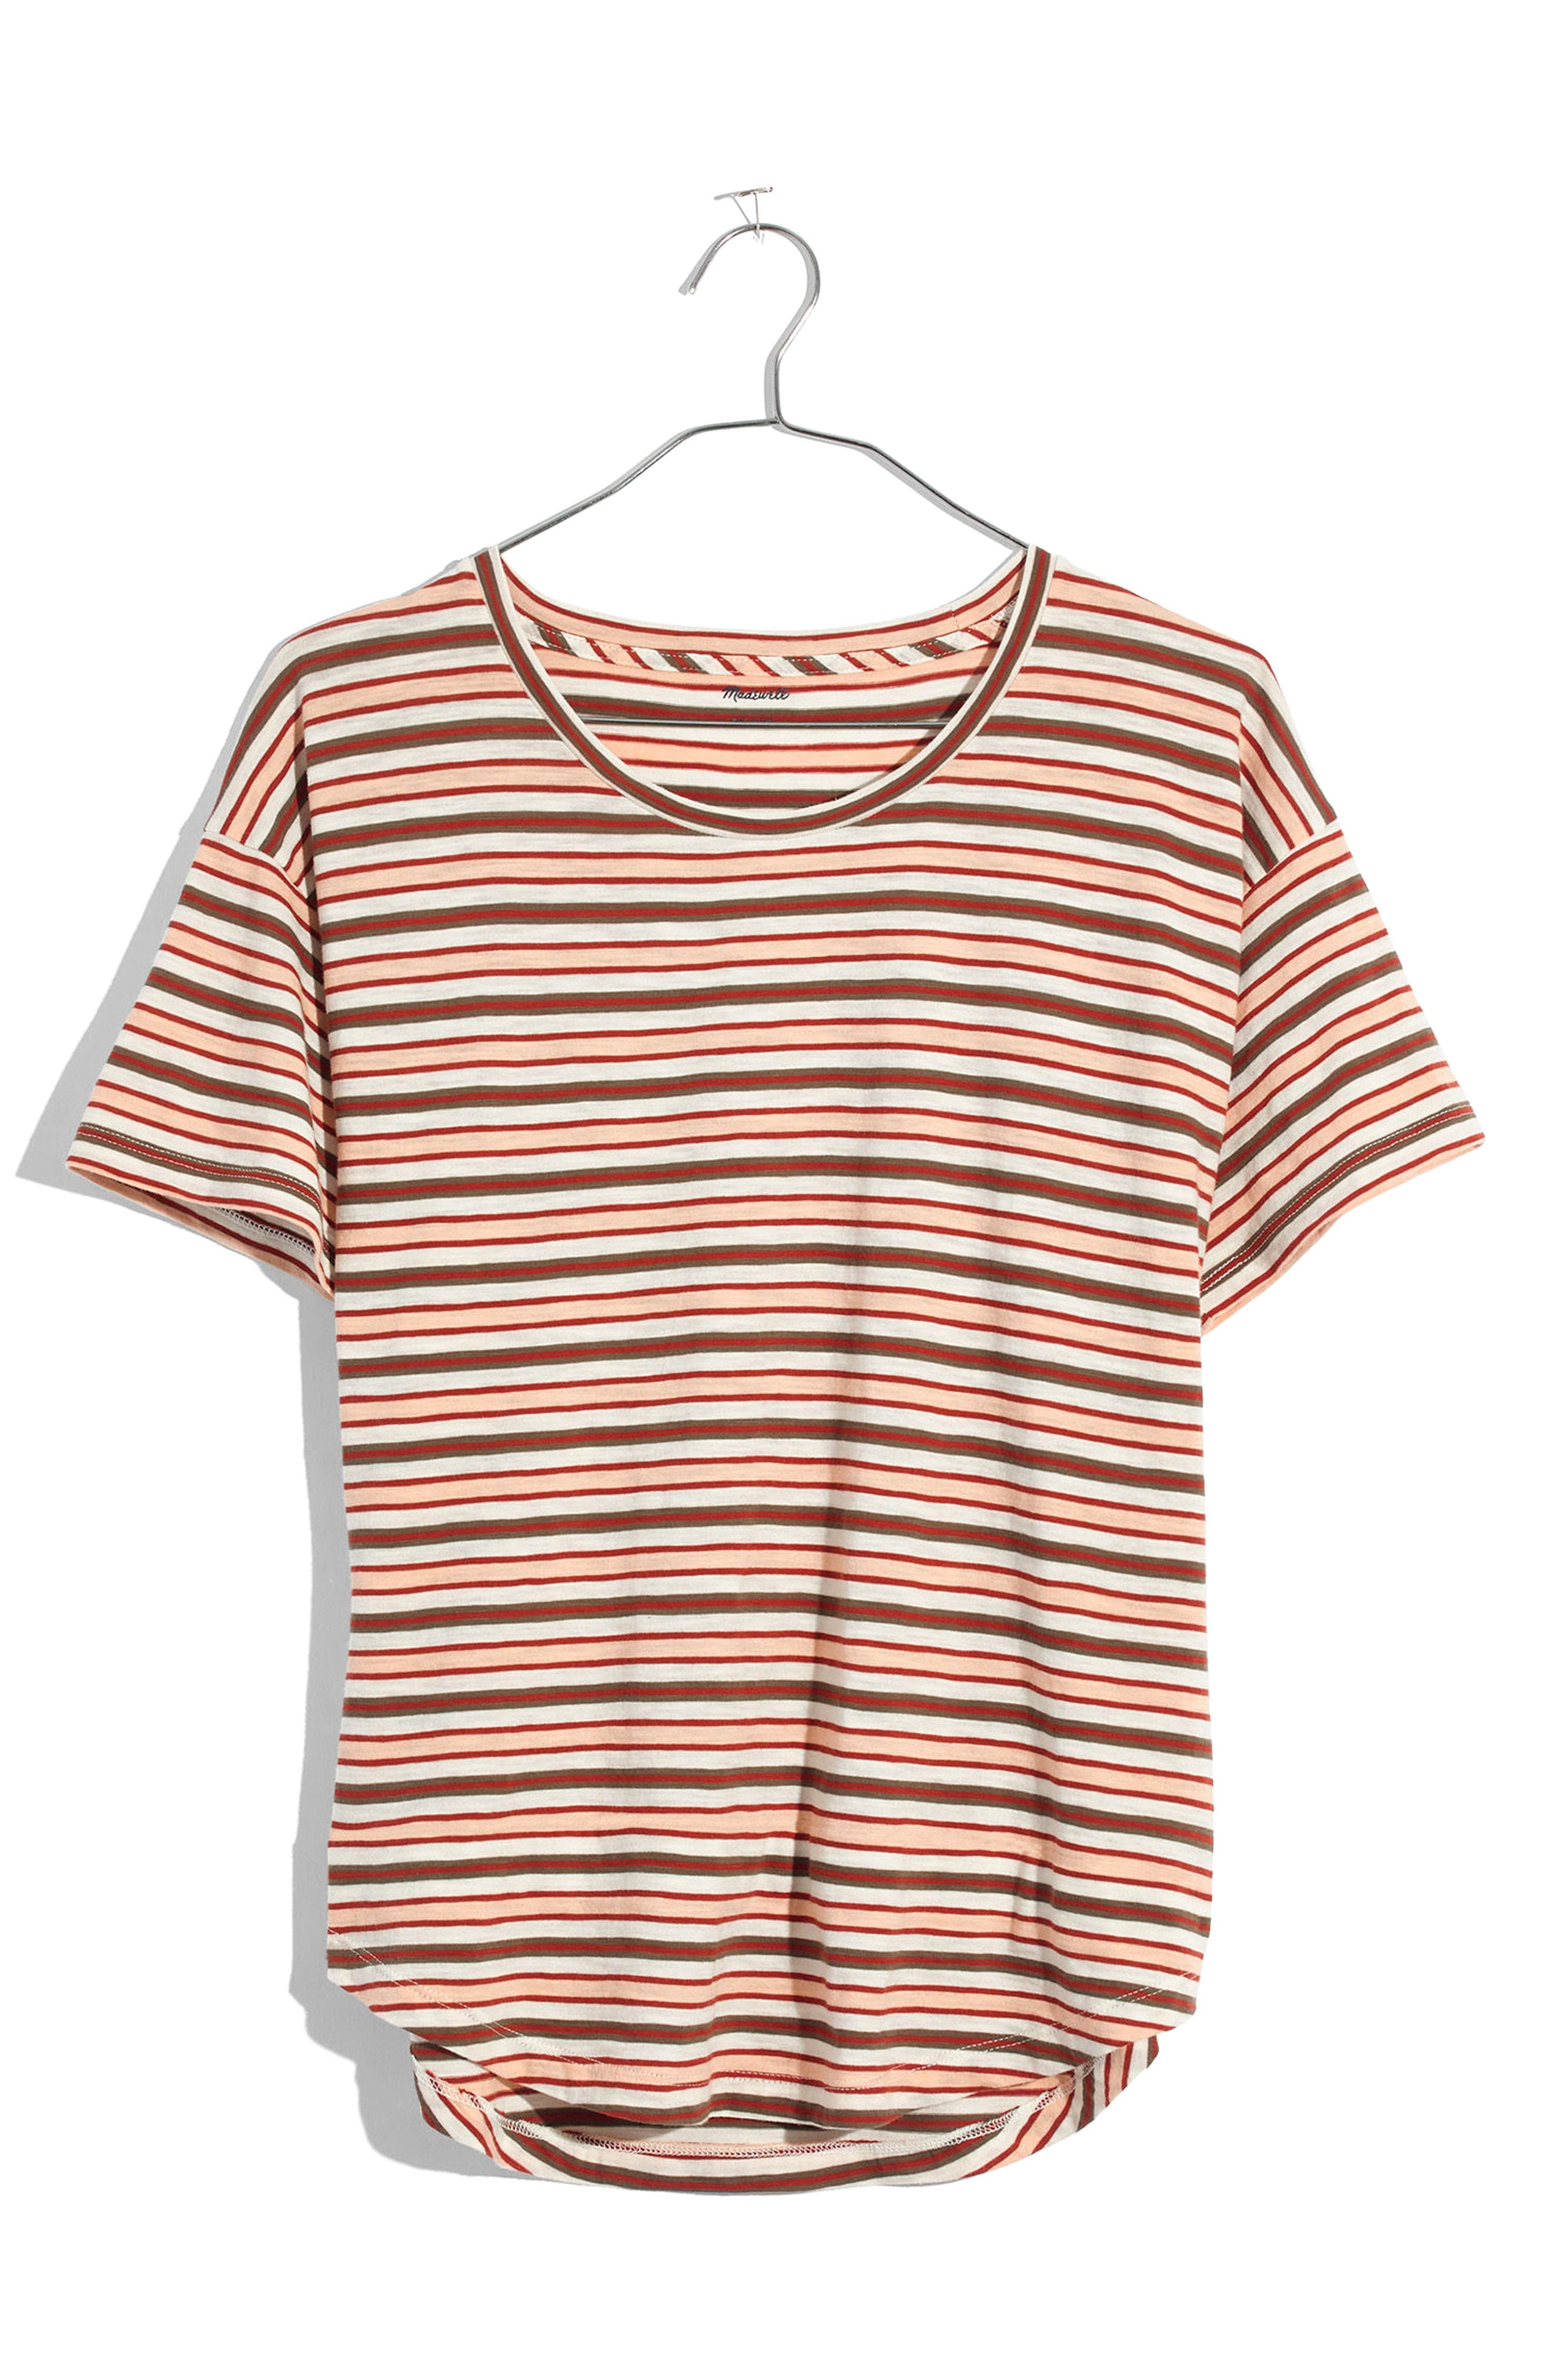 Whisper Cotton Stripe Crewneck Tee,                             Main thumbnail 1, color,                             Muted Shell